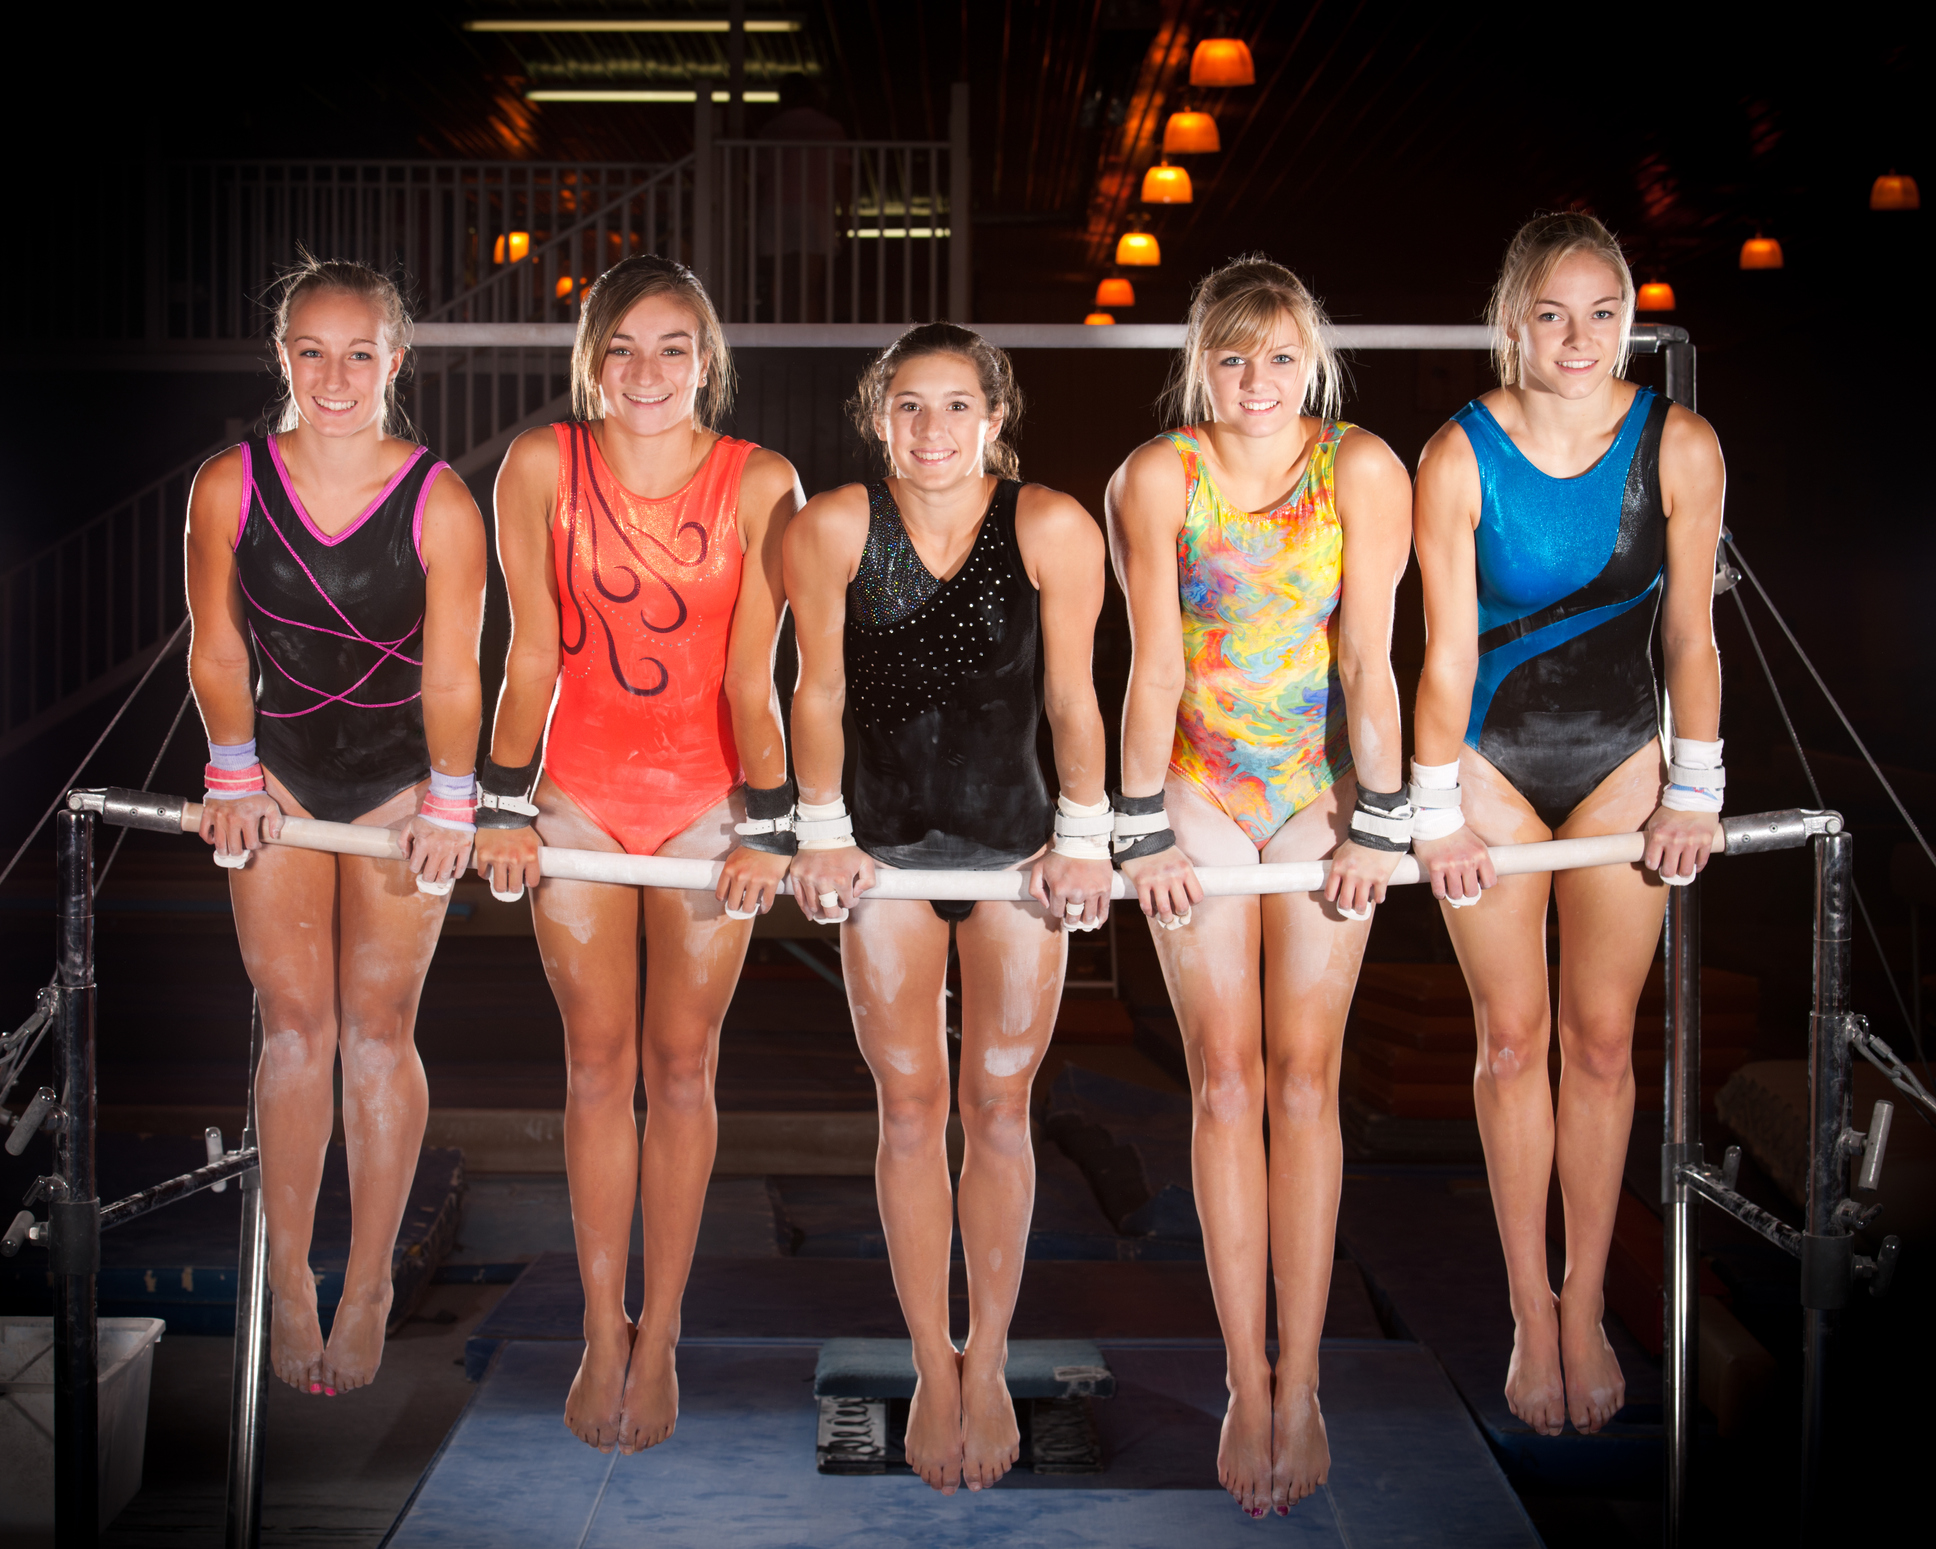 Staying Fueled During Gymnastics Practice (Photo Source: iStock)